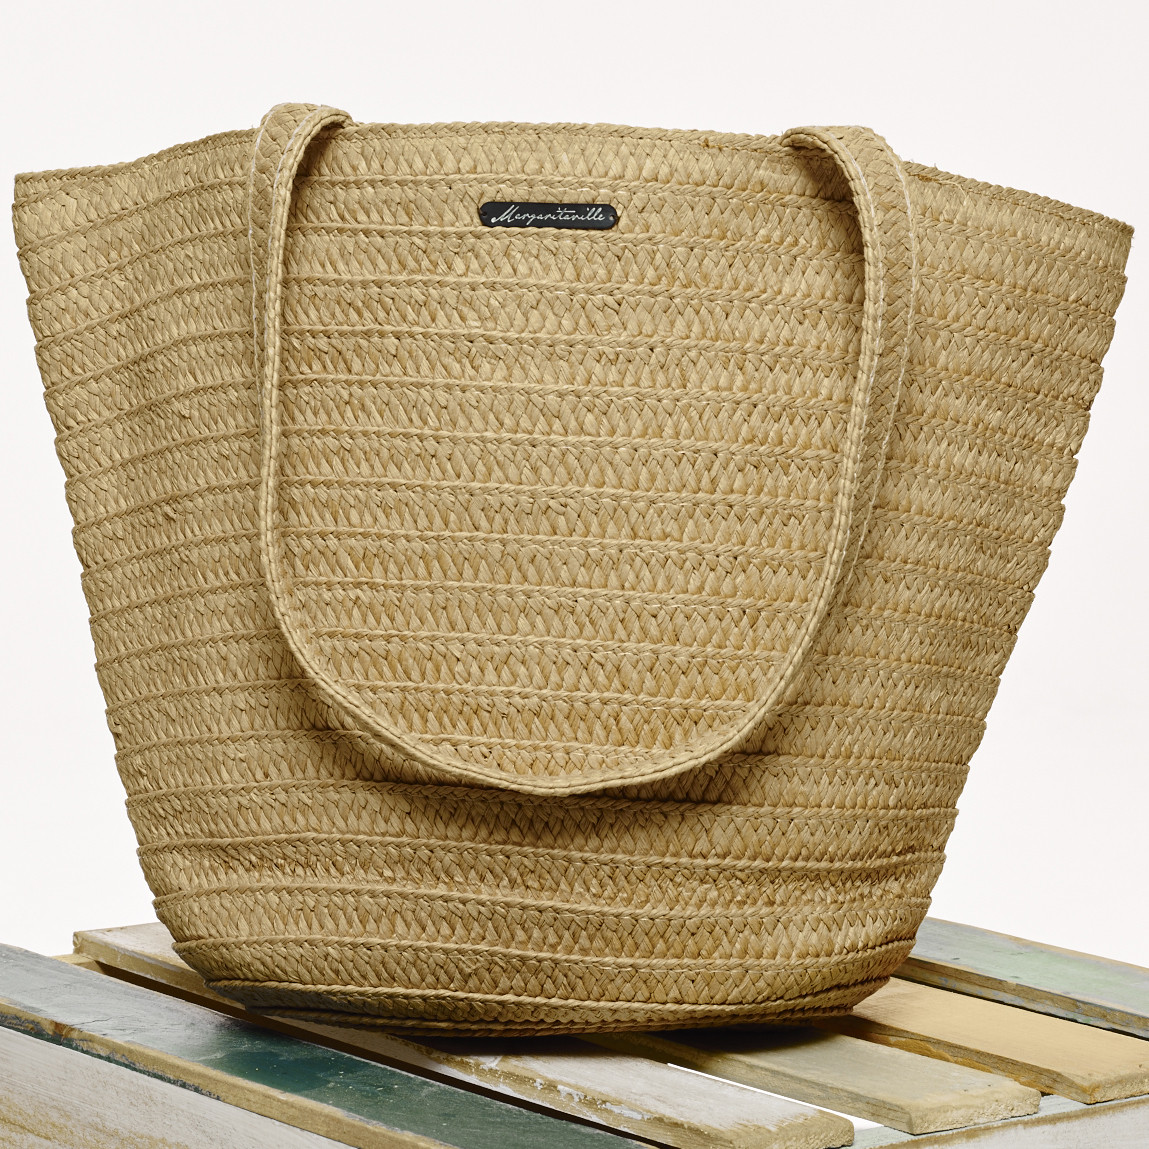 Straw Bag, French Basket, handmade french market bag, Summer Tote, French Market basket bag, straw beach tote, Straw Beach bag WovenFindsCo. 5 out of 5 stars () $ Bestseller Favorite Add to See similar items + More like this.